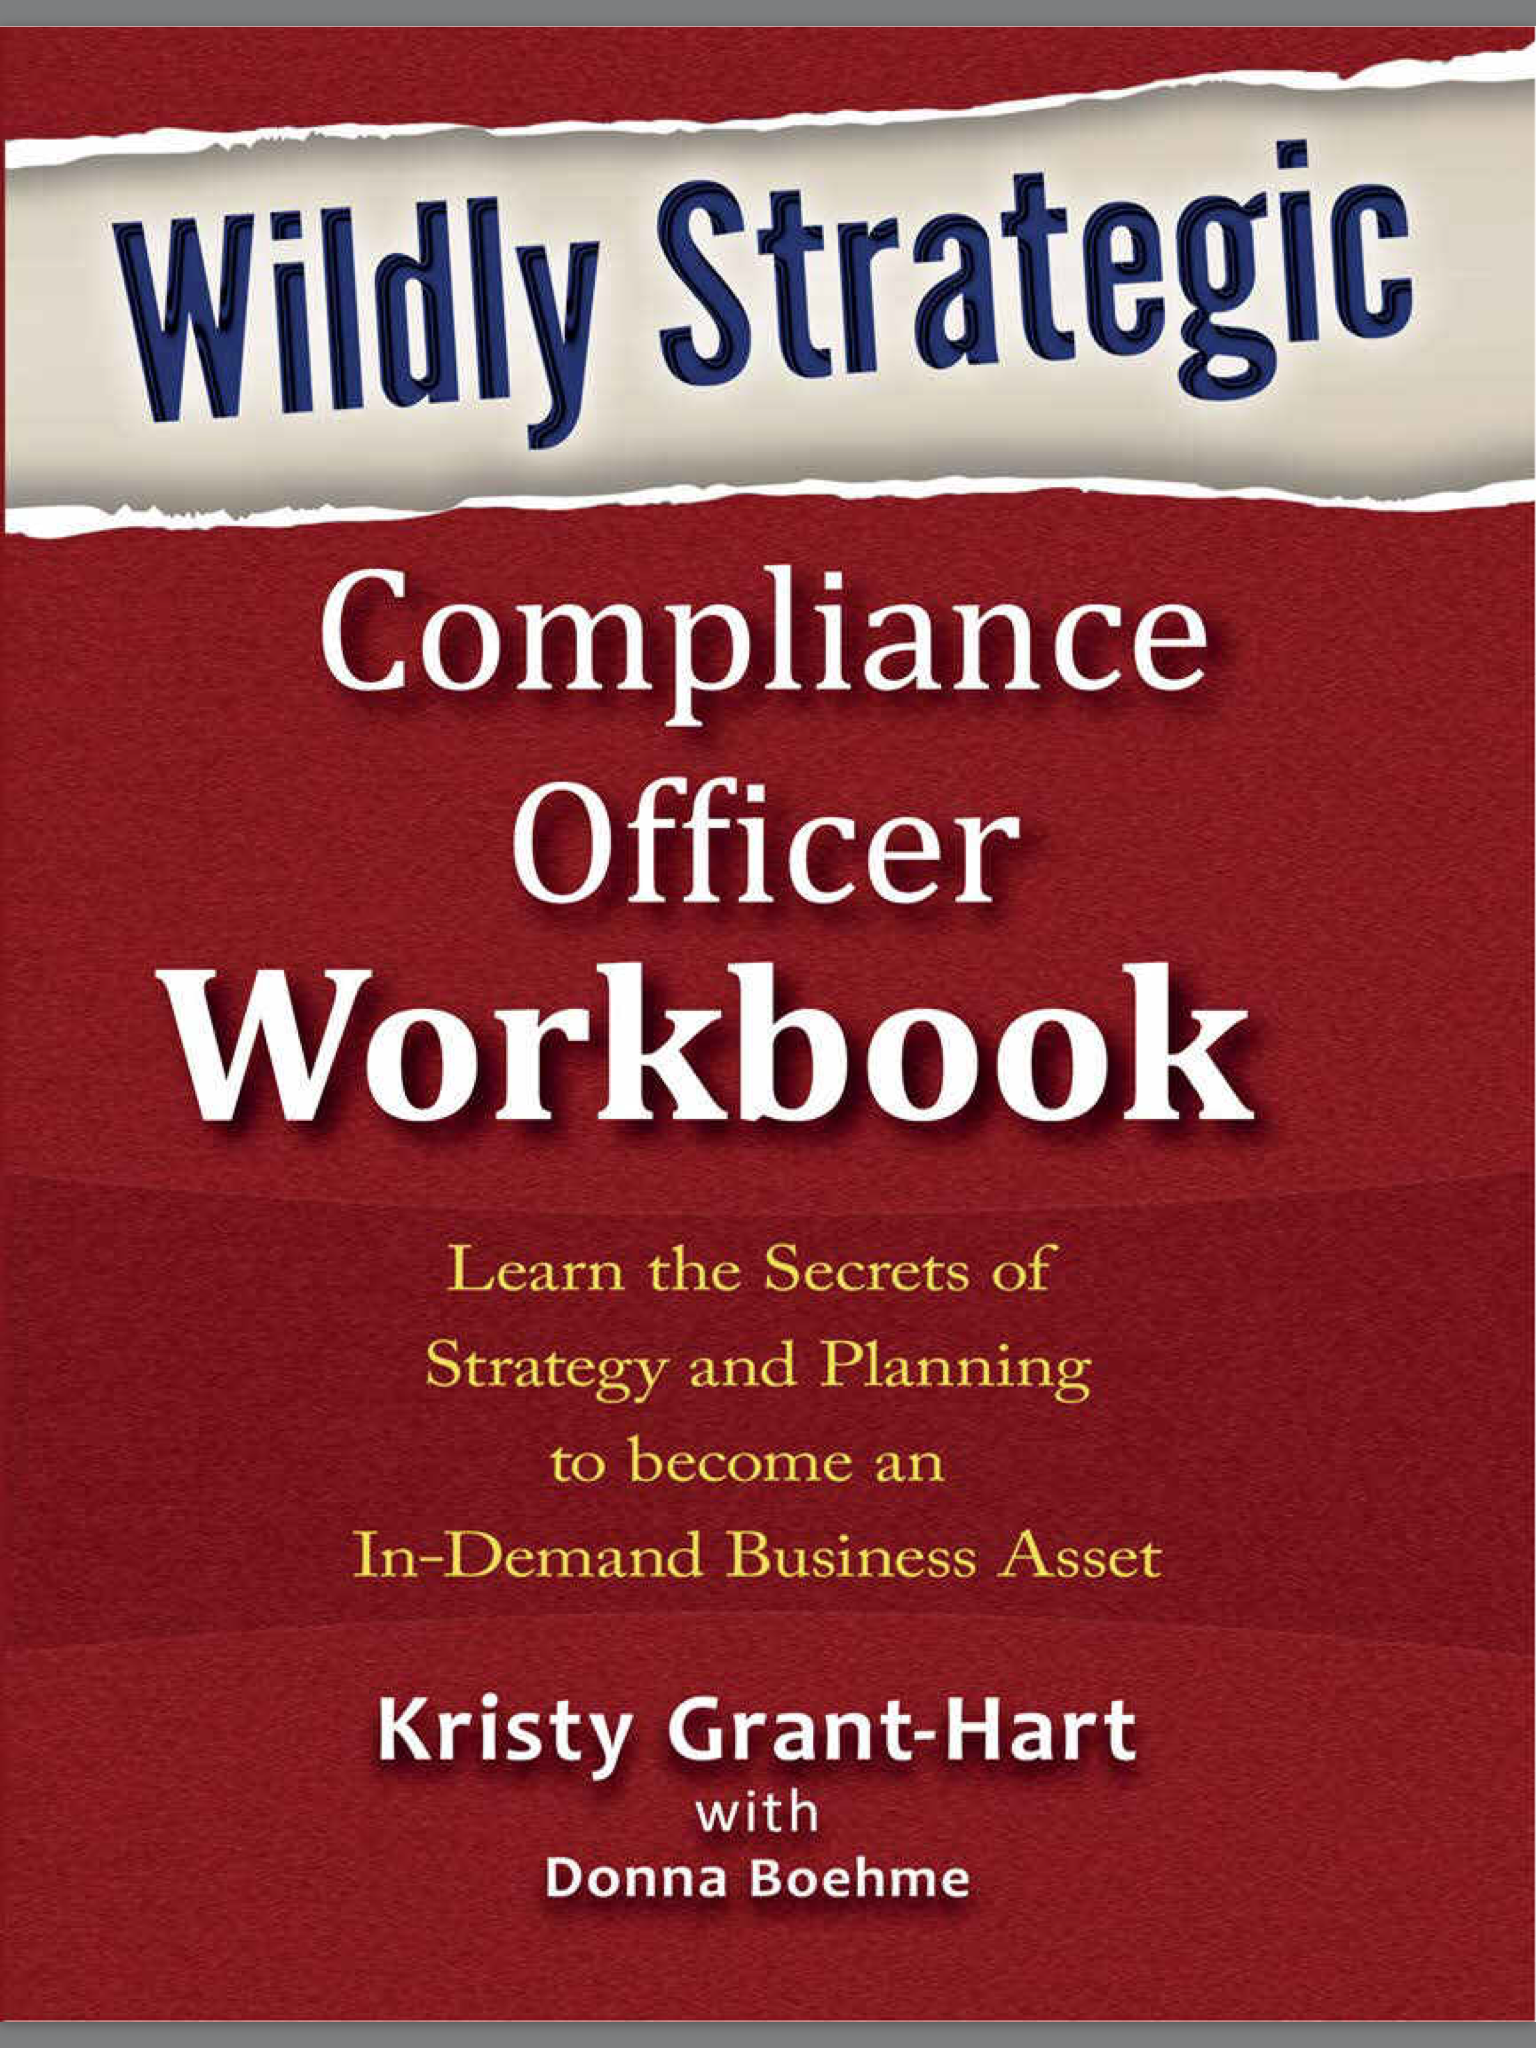 Book wildly strategic compliance officer radical compliance - Compliance officer certification programs ...